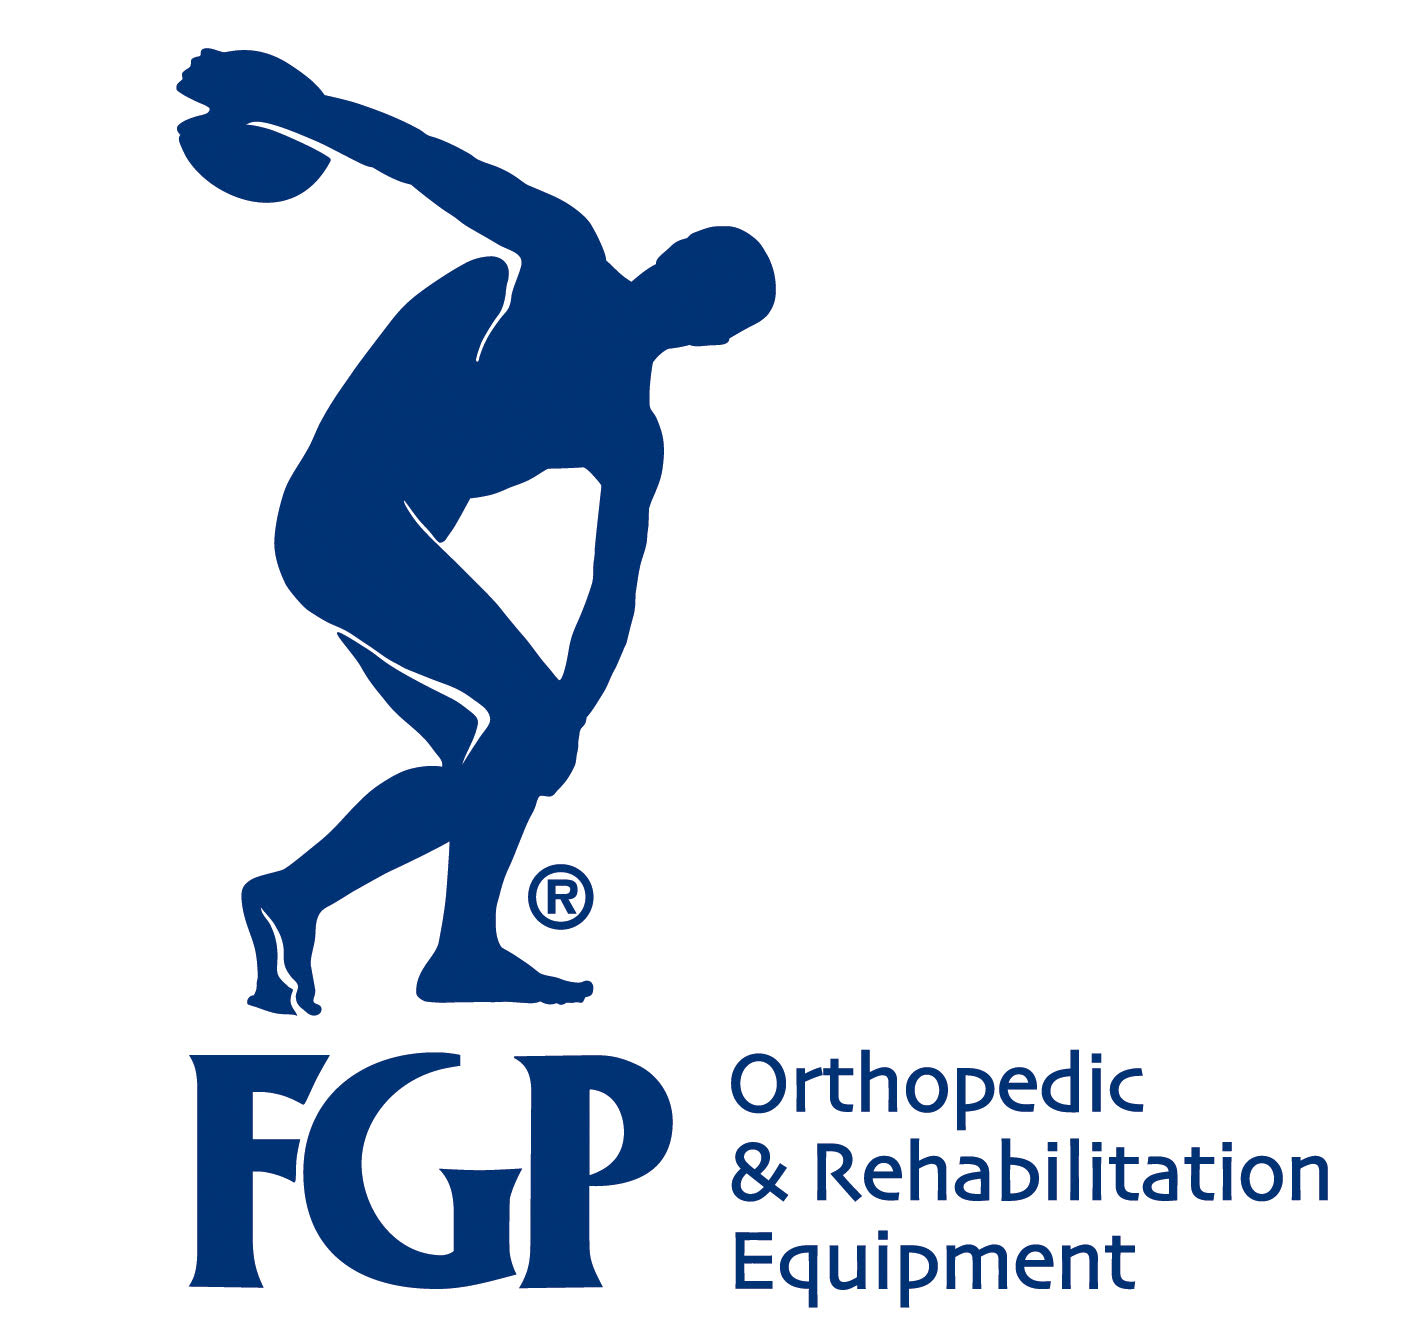 Logo-orthopedic-rehabilitation